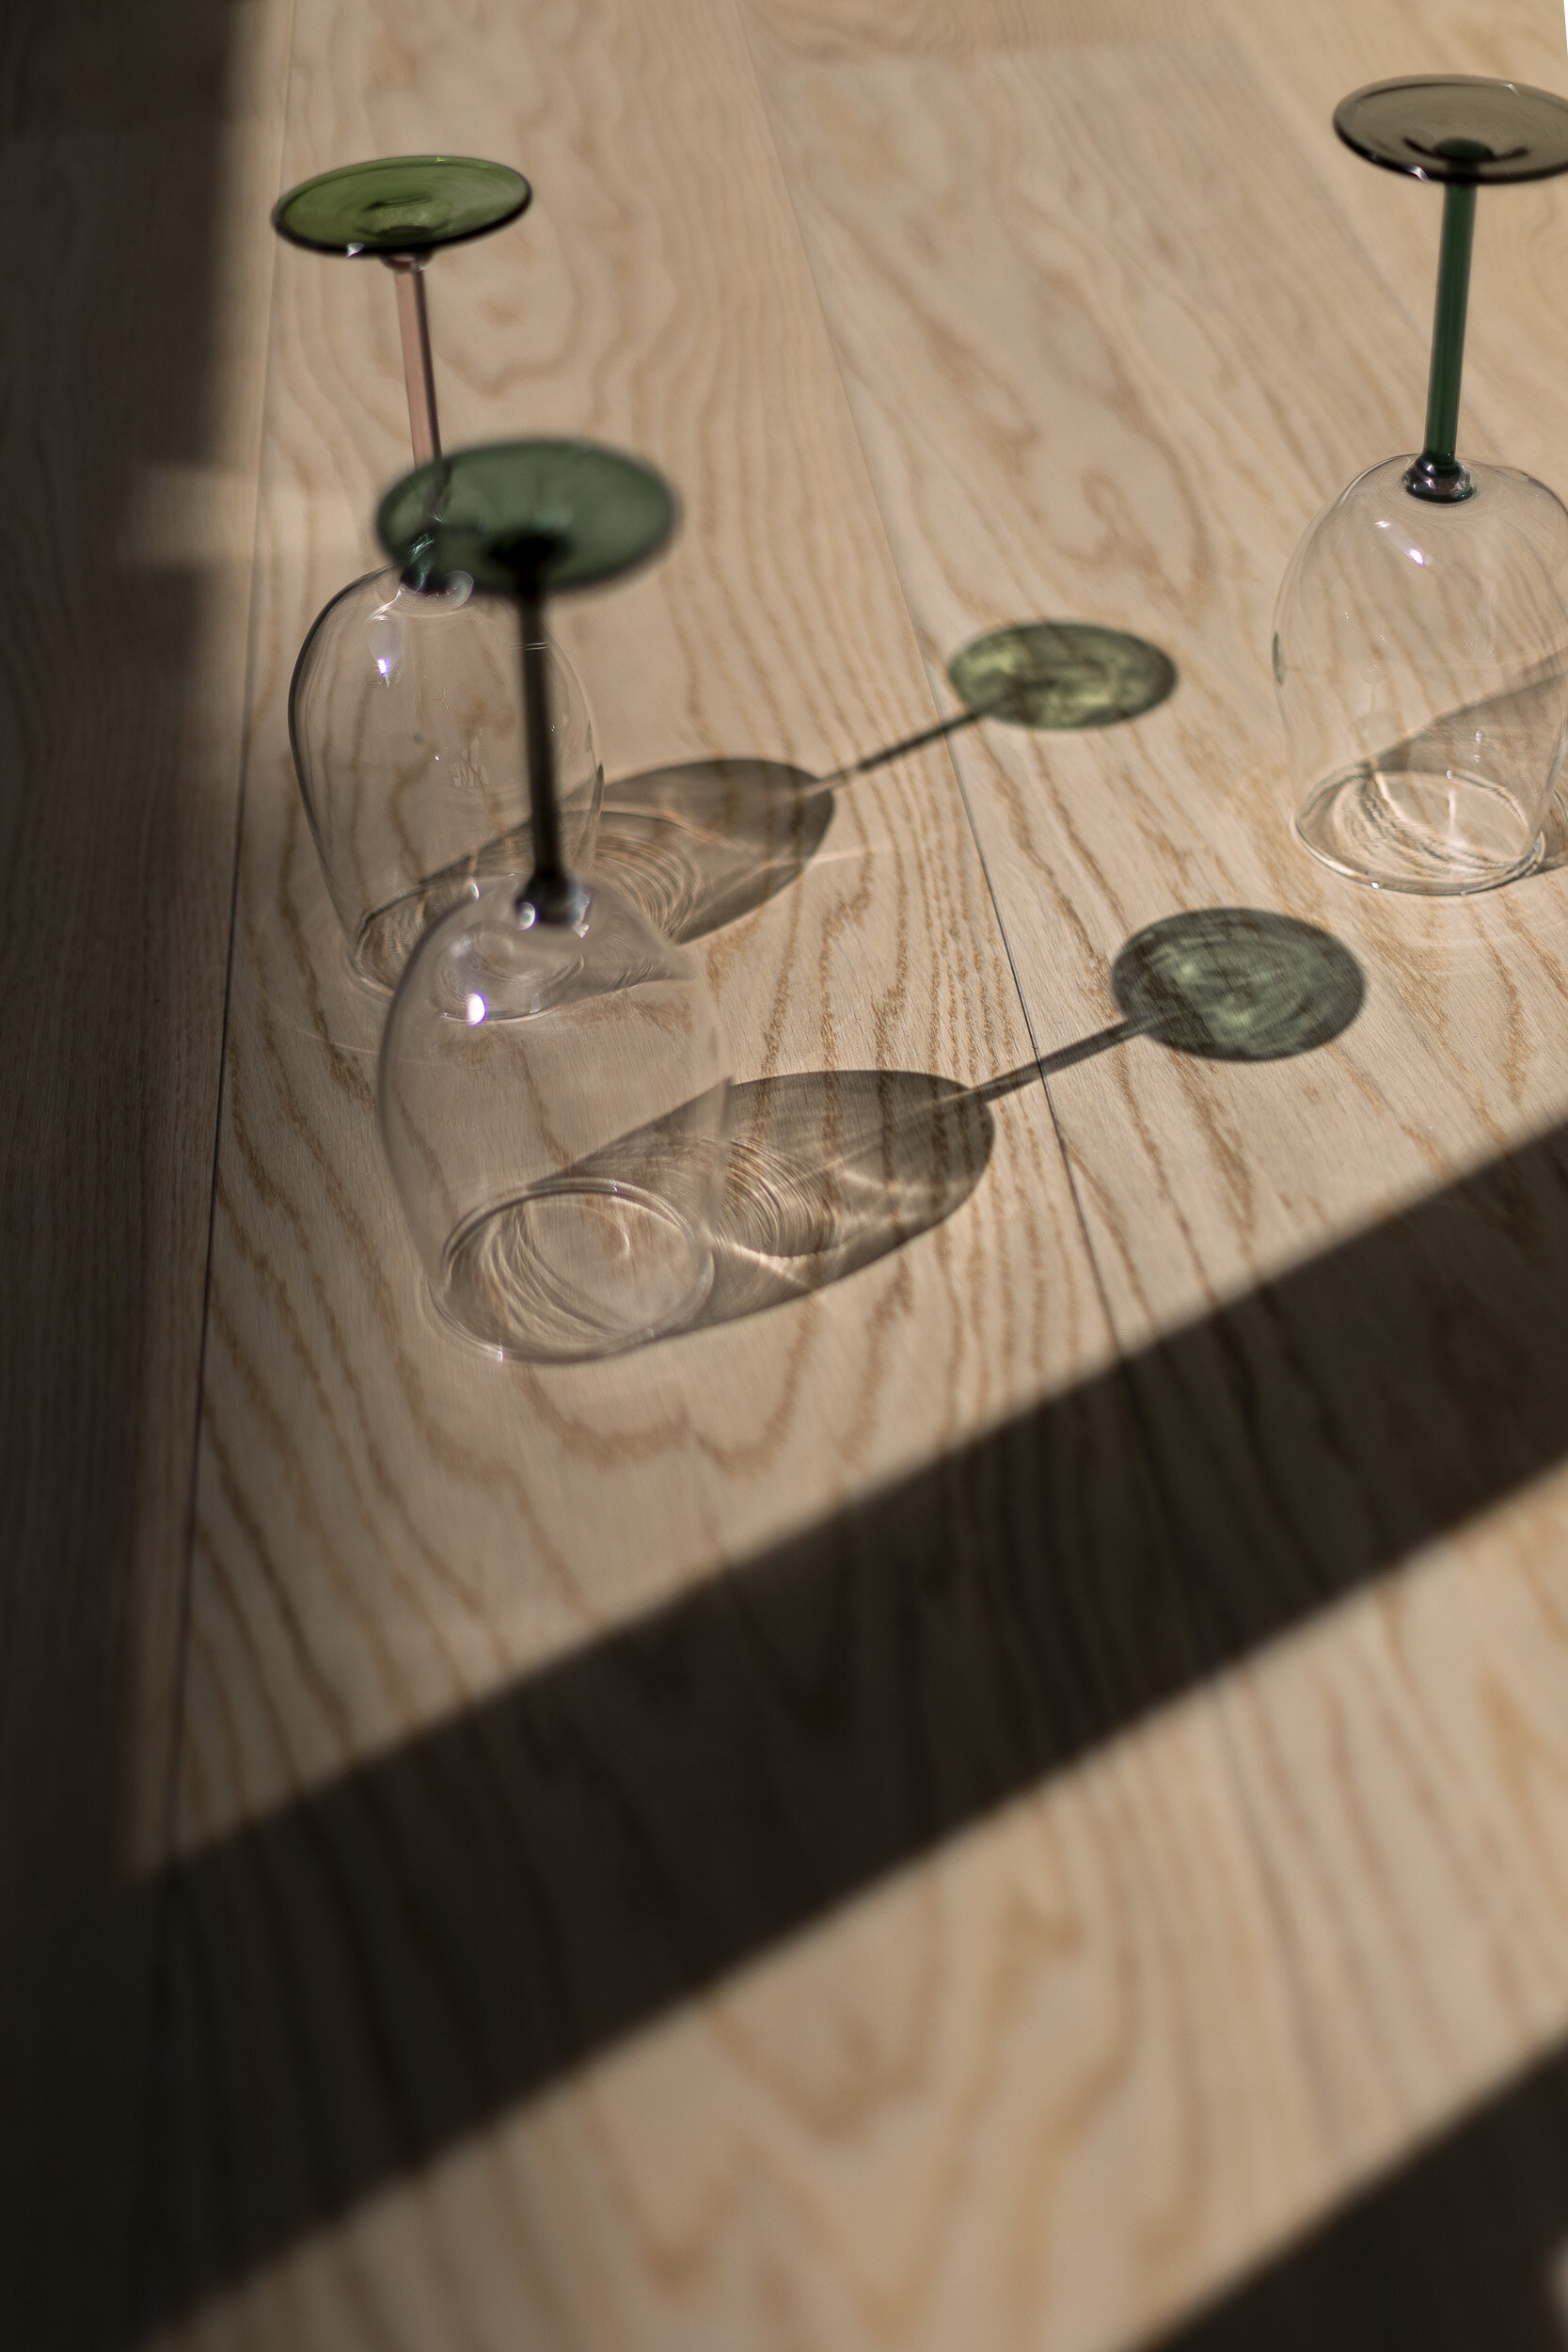 Bild Holz Https://www.flowgallery.co.uk/shop/p/wine-glasses-by-jochen-holz